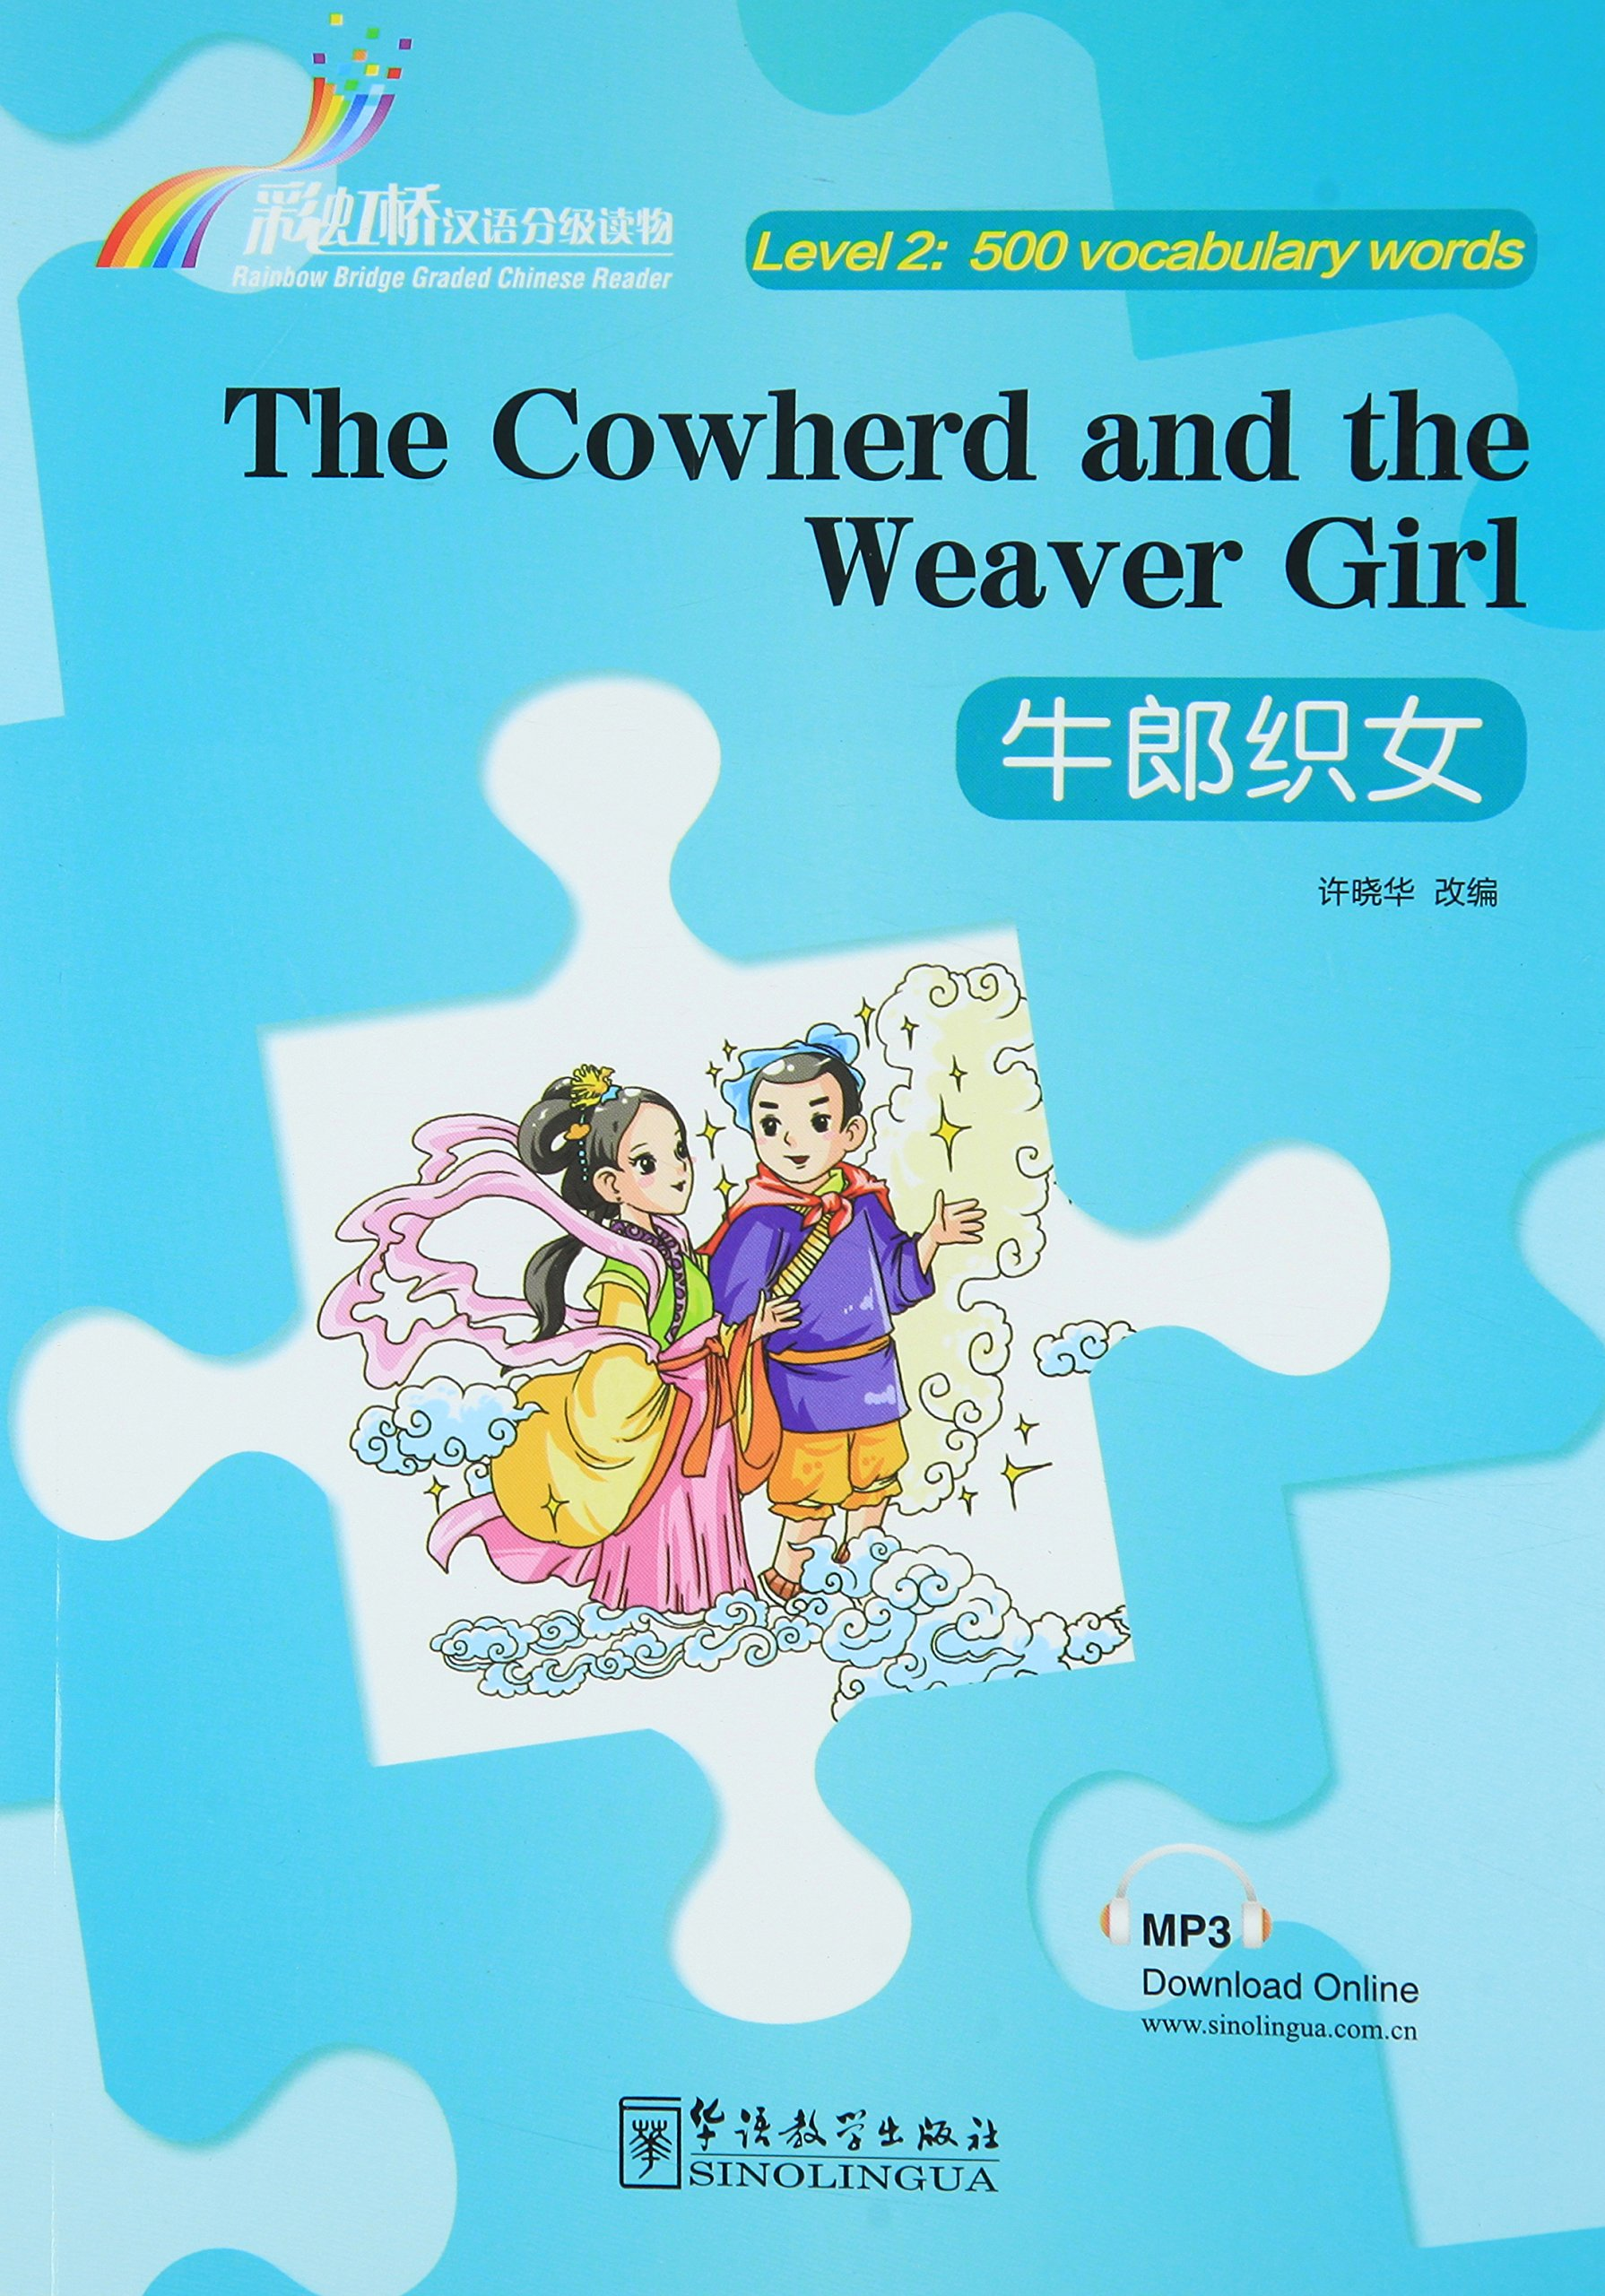 The Cowherd and the Weaver Girl - Rainbow Bridge Graded Chinese Reader, Level 2: 500 Vocabulary Words